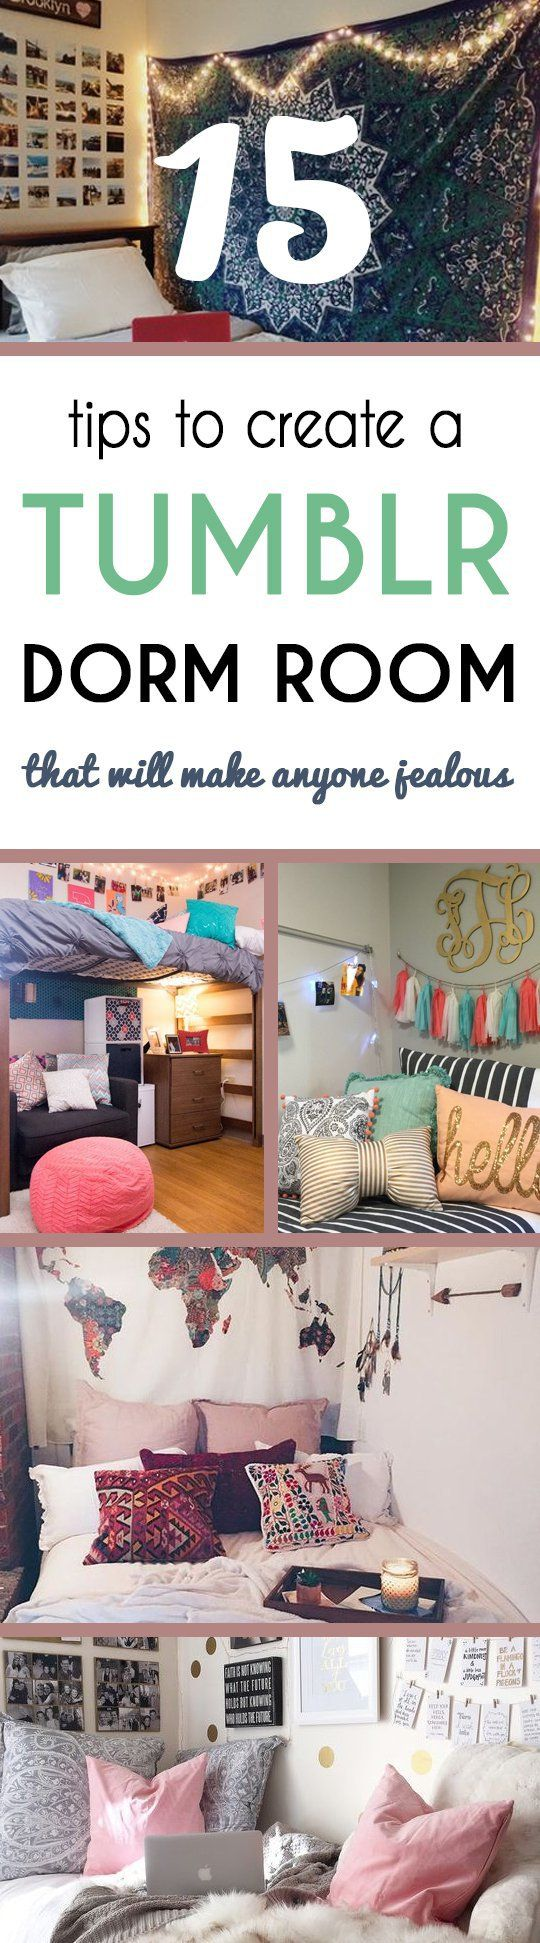 Uofm Room Ideas